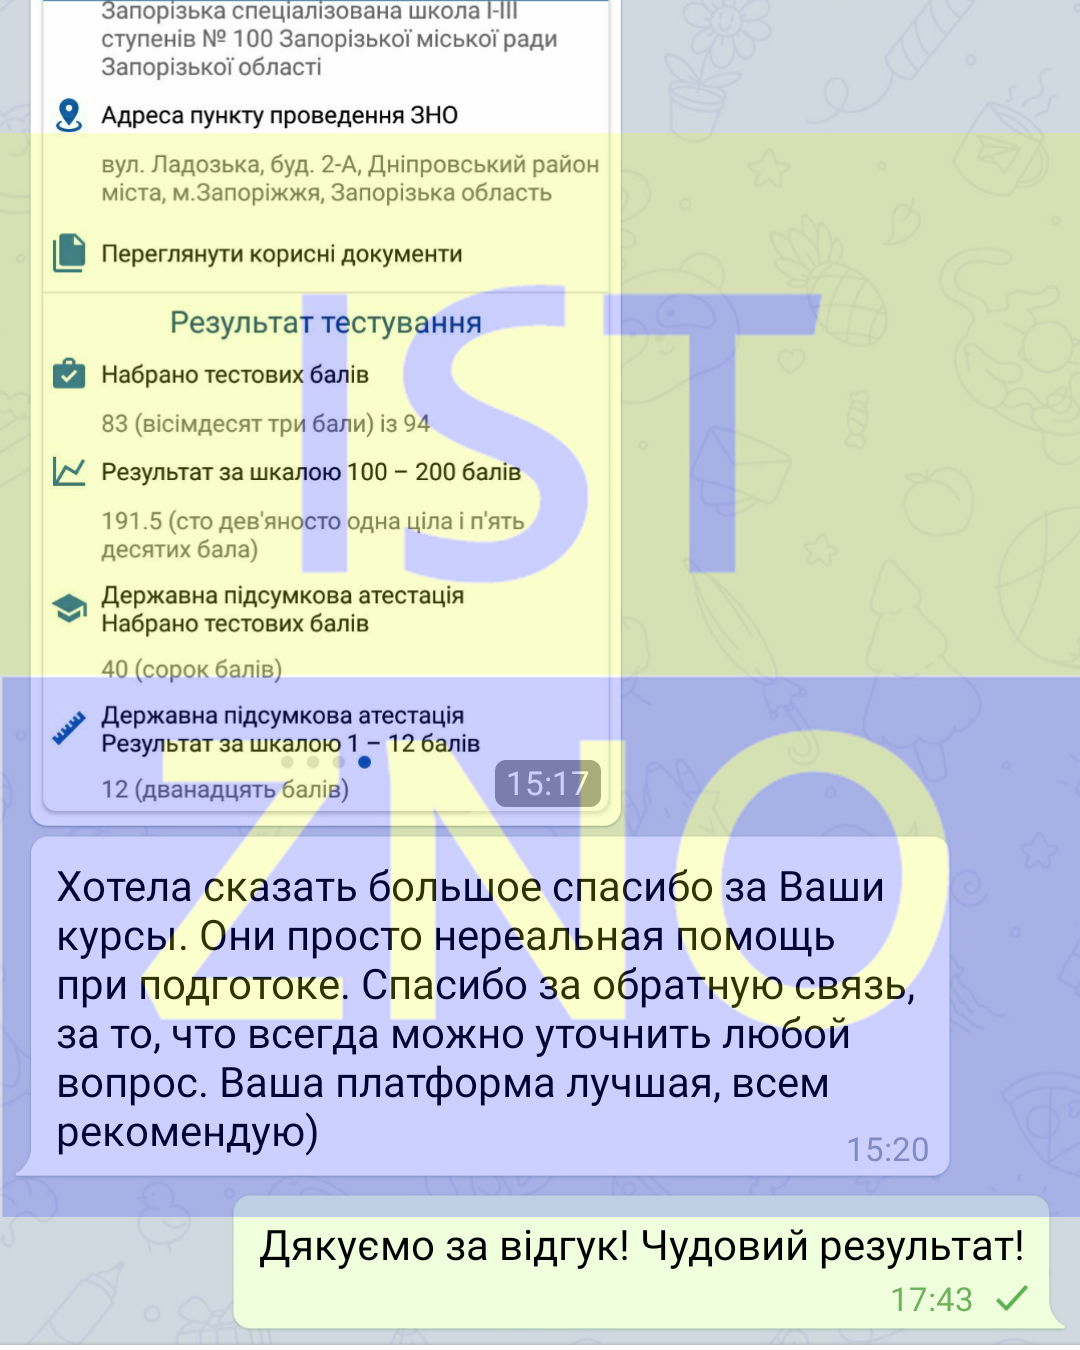 Screenshot_2019-06-23-17-43-35-395_org.telegram.messenger